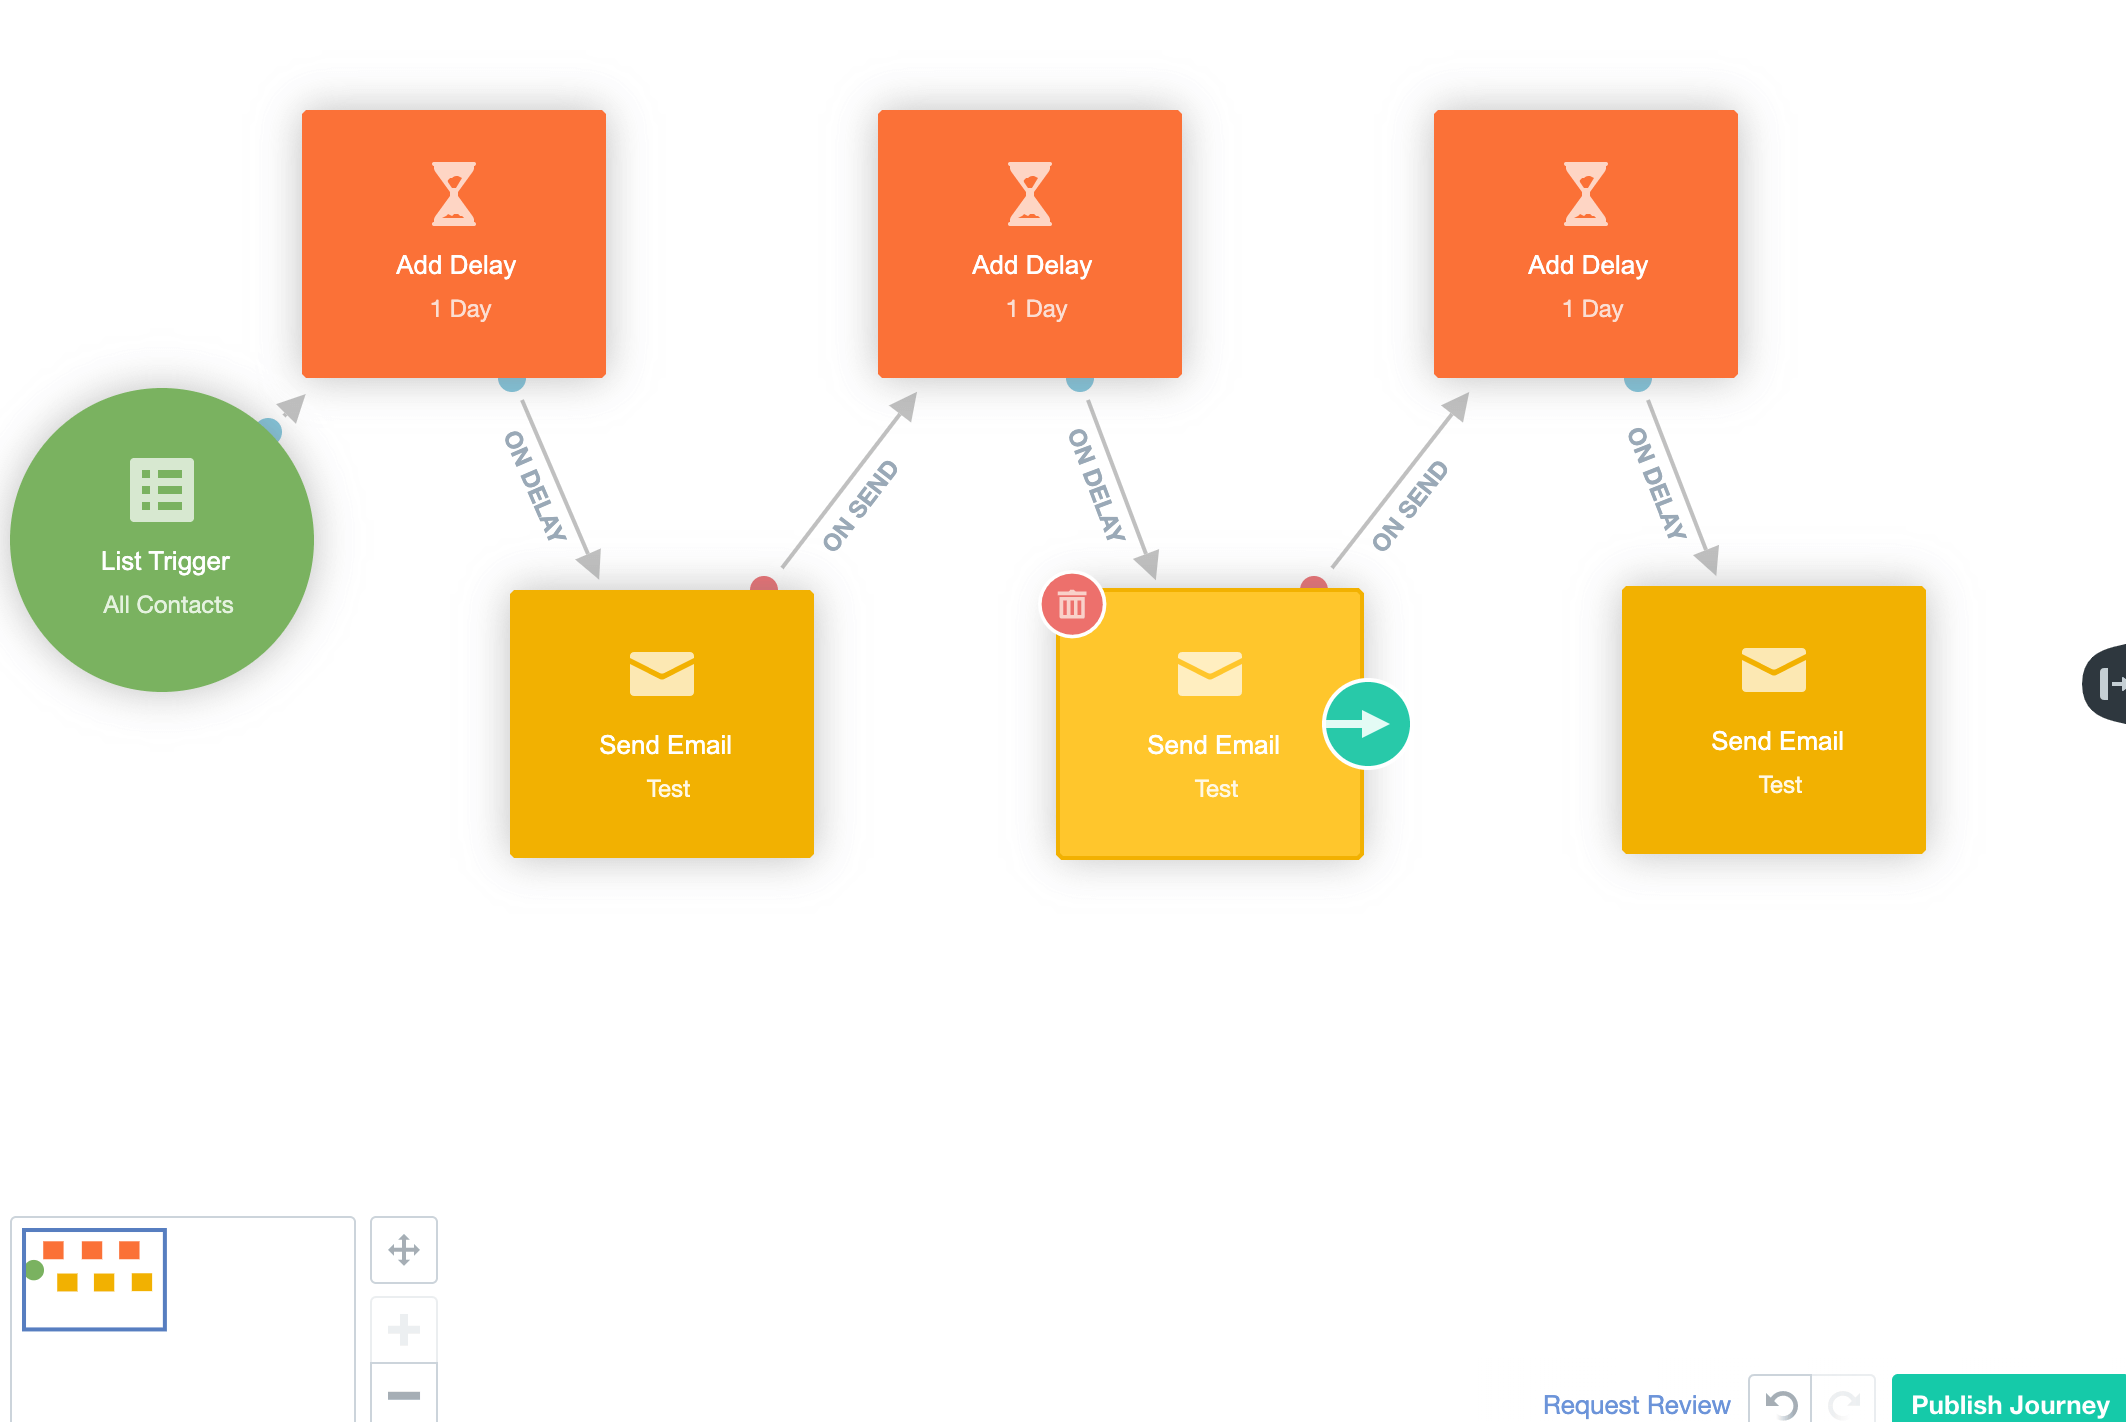 AutopilotHQ Pipedrive email automation workflow